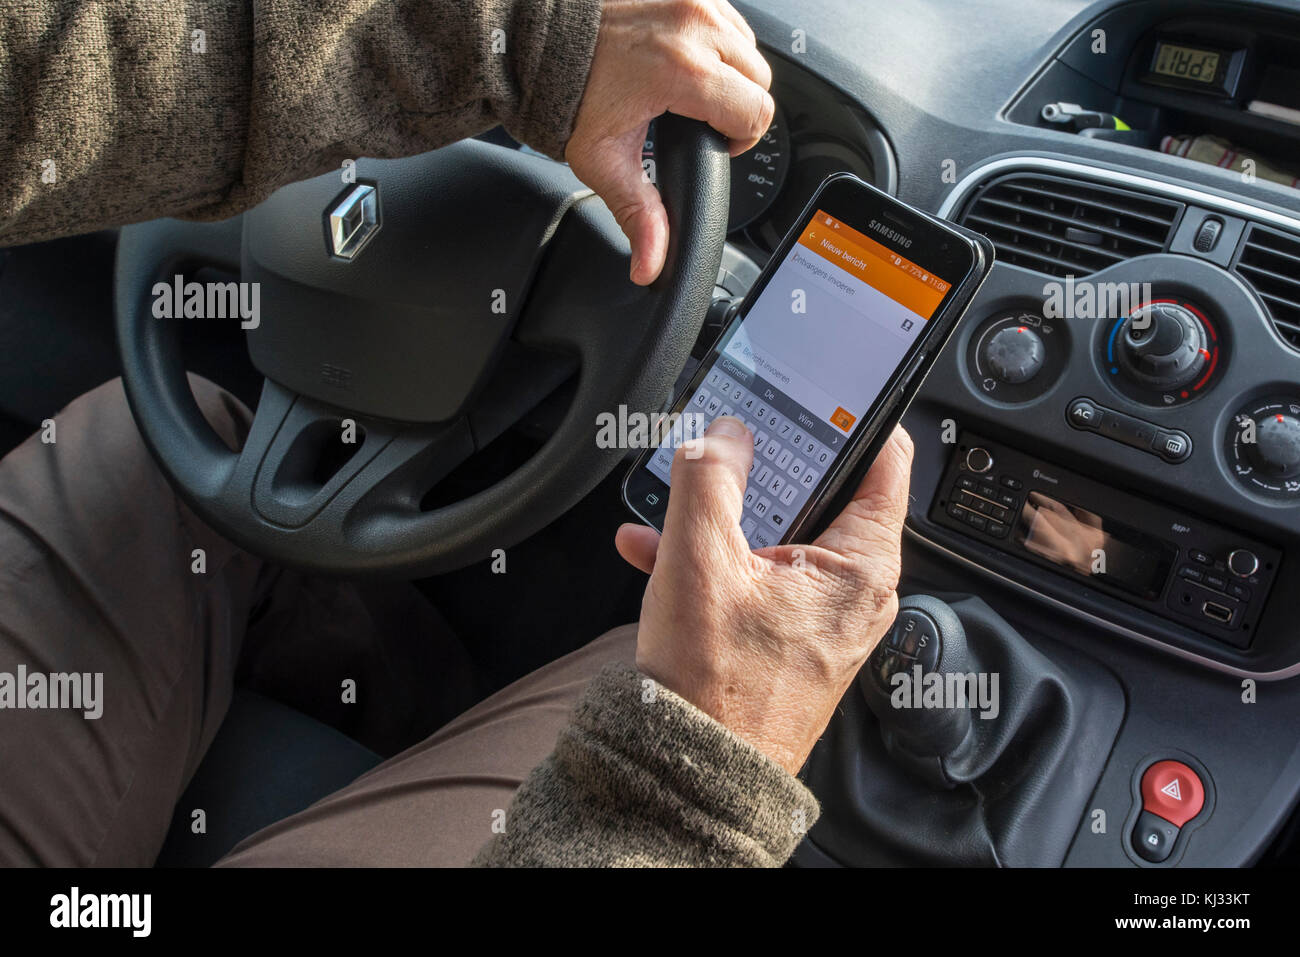 Irresponsible man at steering wheel sending message by text messaging / texting on smart phone / smartphone / cellphone - Stock Image